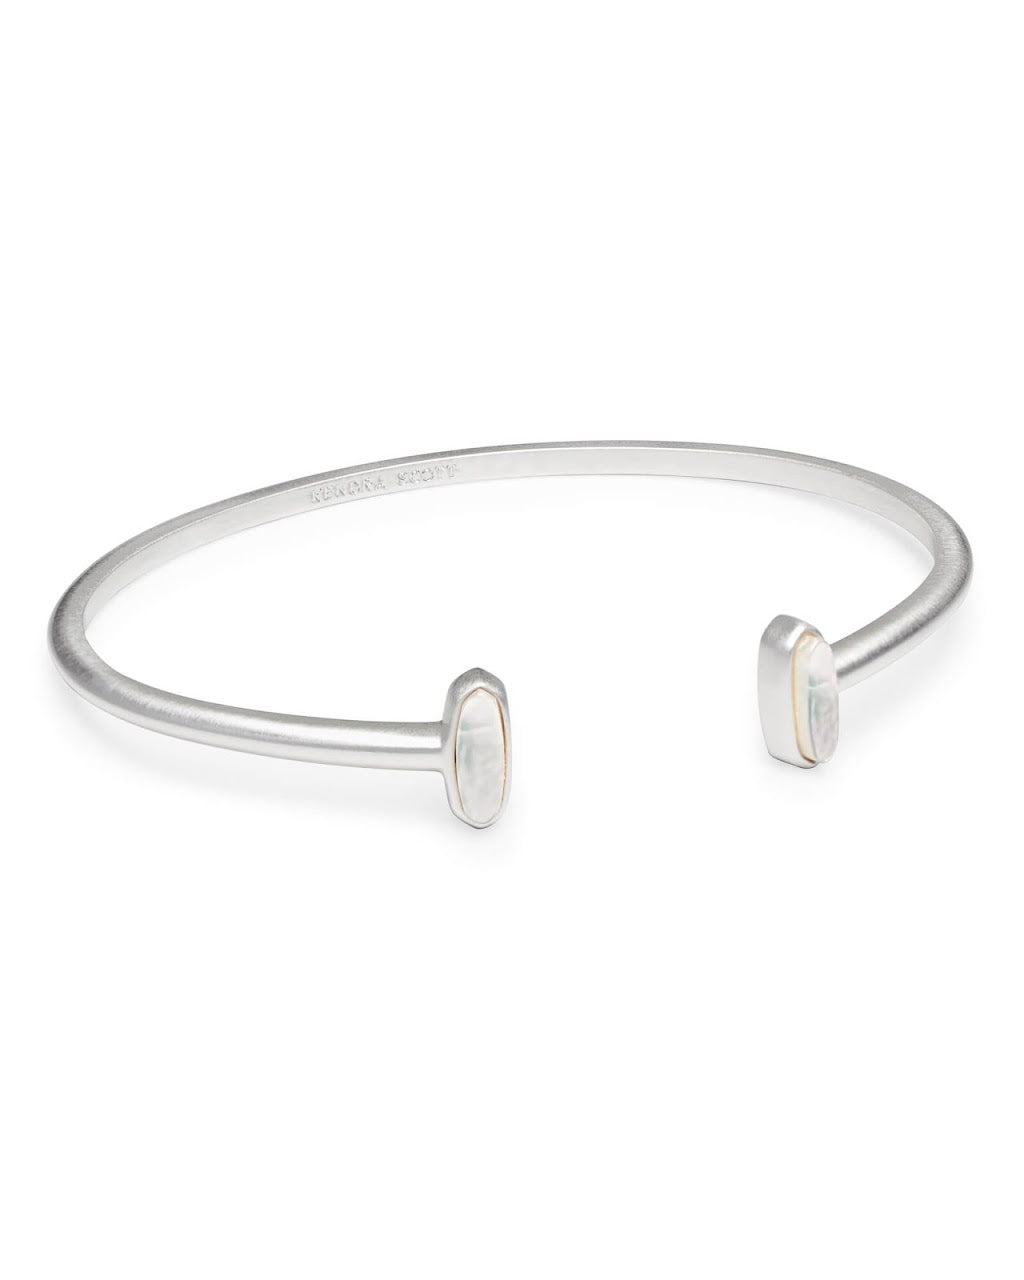 Mavis Bright Silver Cuff Bracelet-Ivory Mother of Pearl